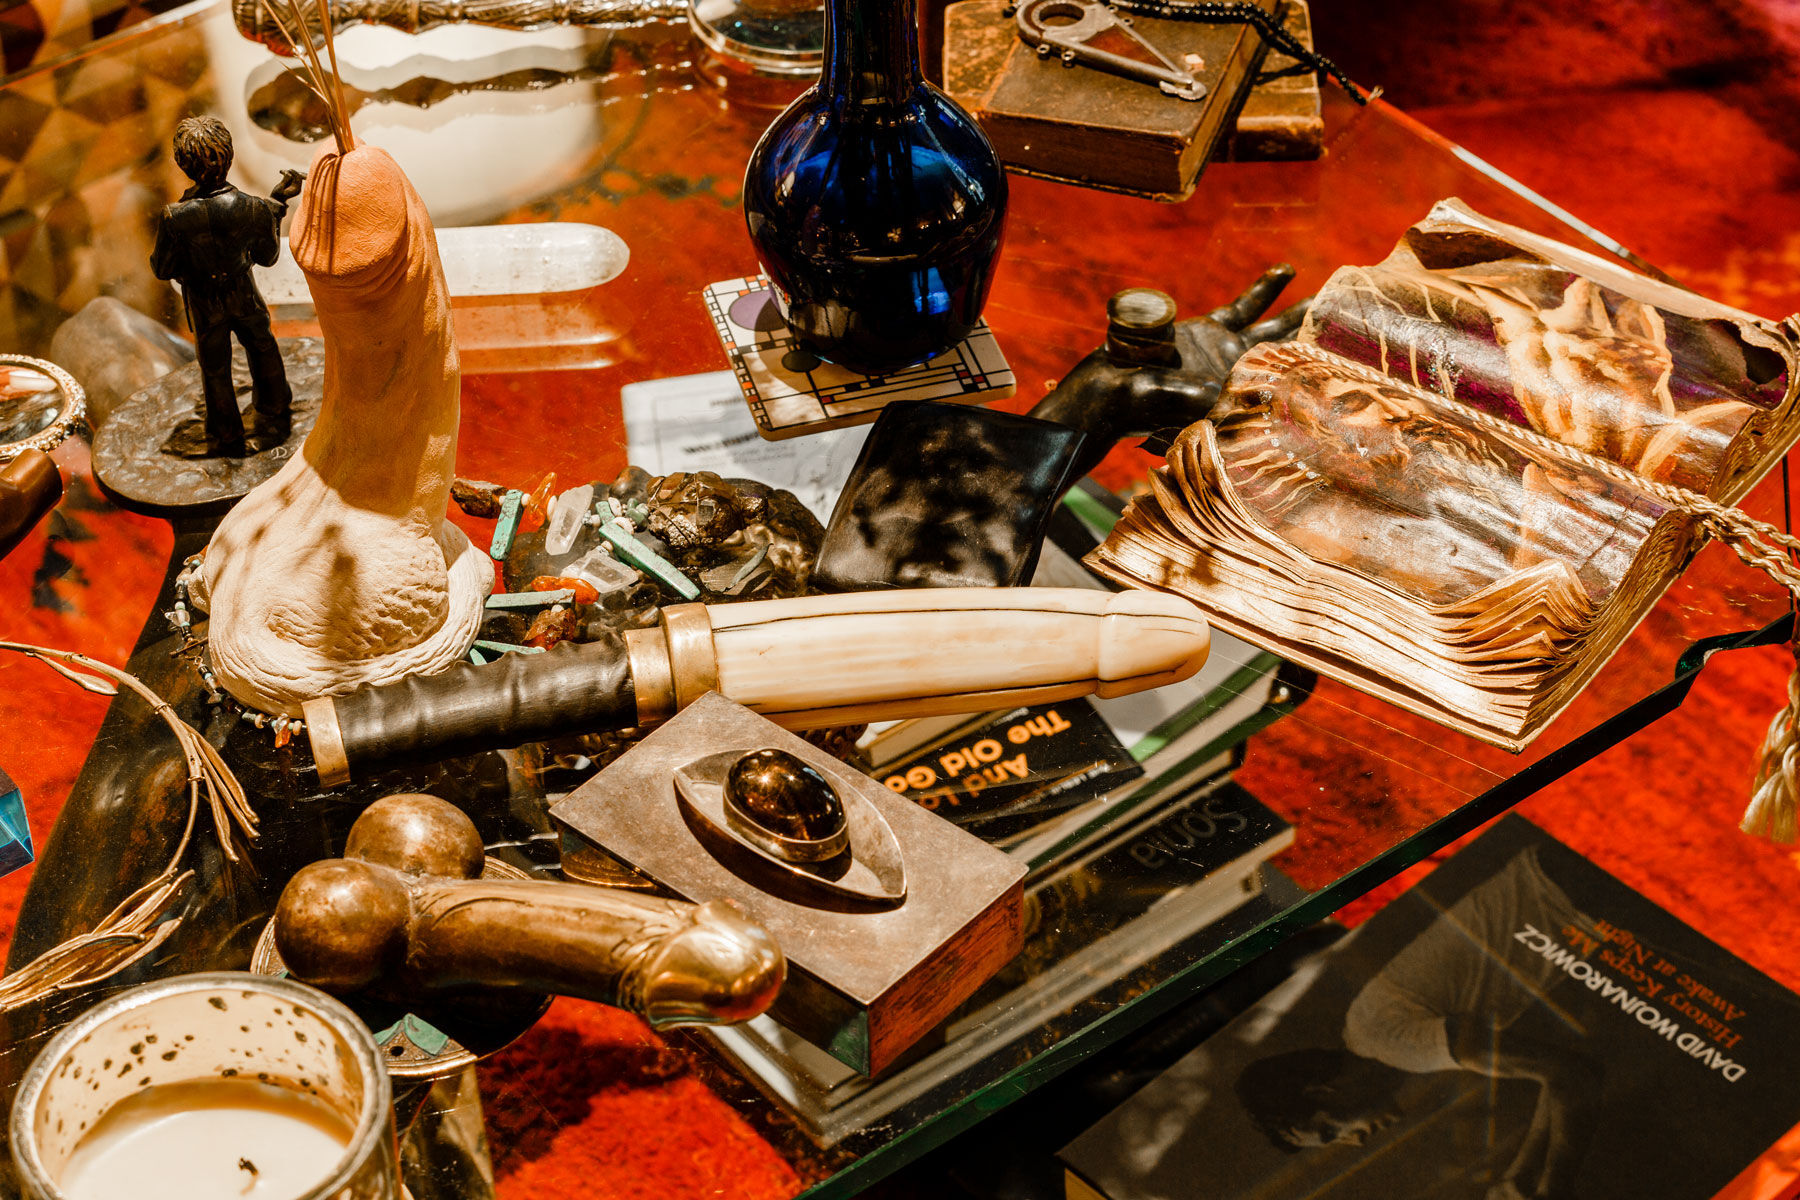 Charles Leslie's living room table features various crystal and ceramic penises as well as an ivory-and-brass dildo, or godemiché, from the Edo period in Japan. Photo by Max Burkhalter for Artsy.